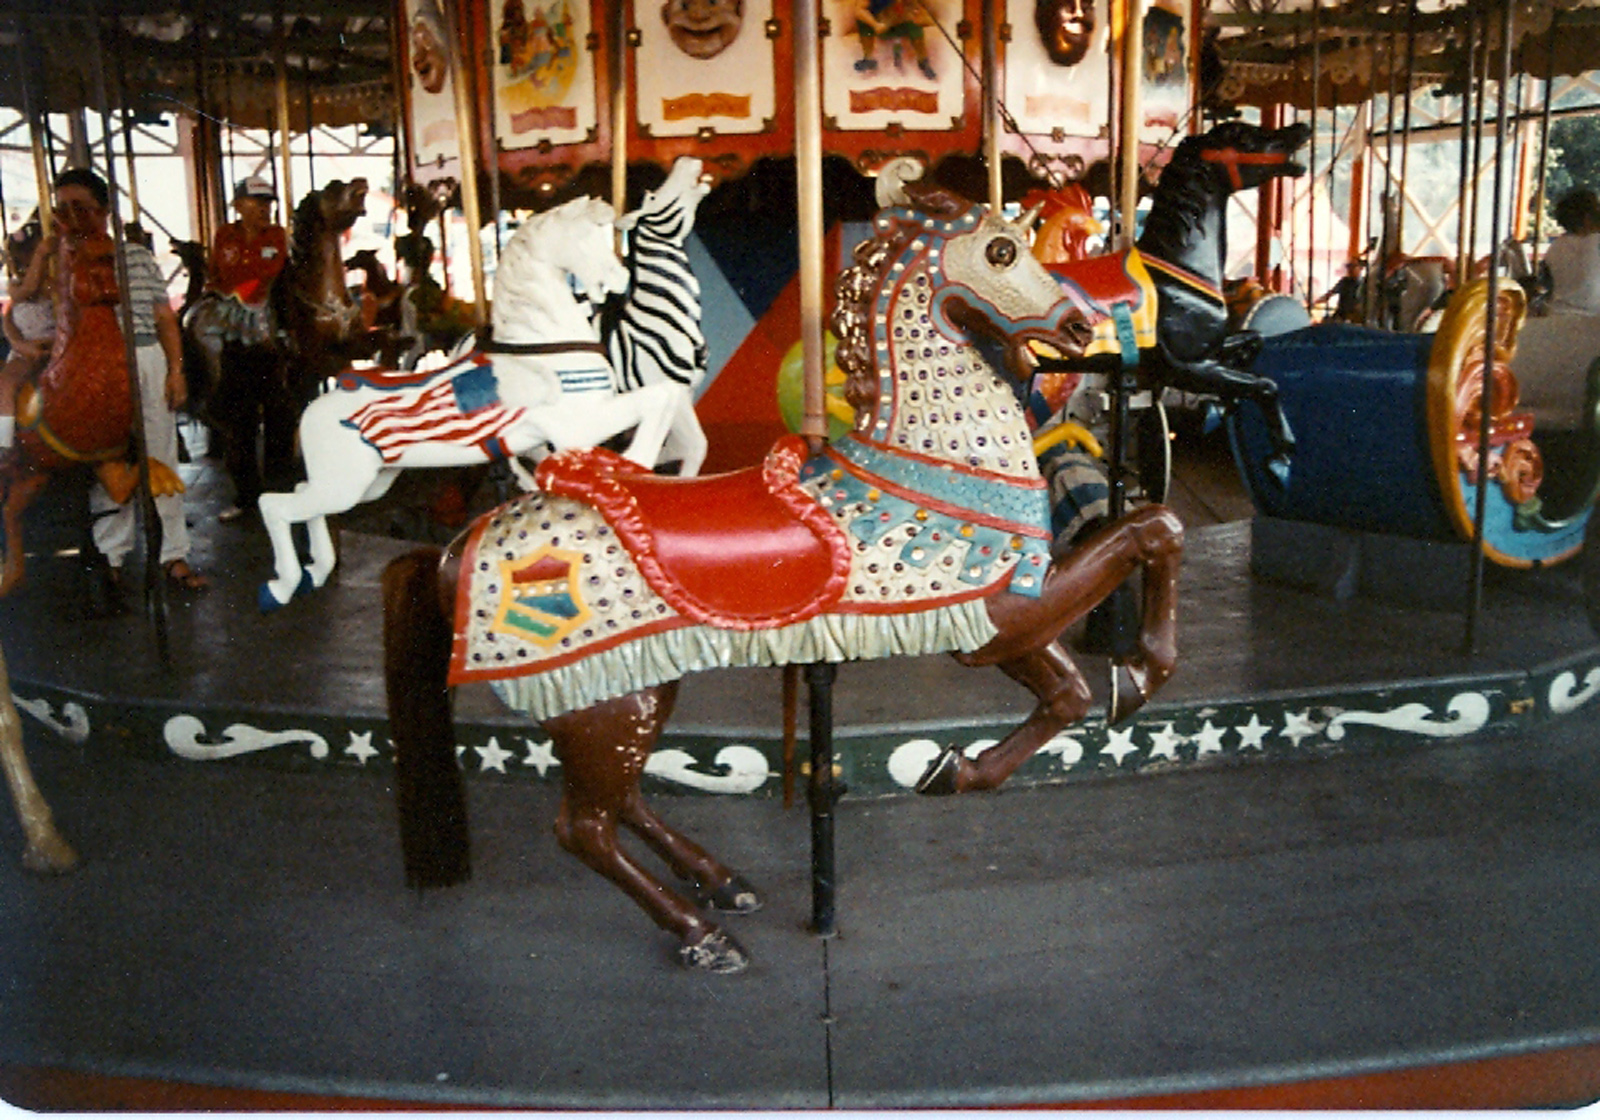 Rocky-Point-RI-ca-1910-Herschell-Spillman-carousel-armored-prancer